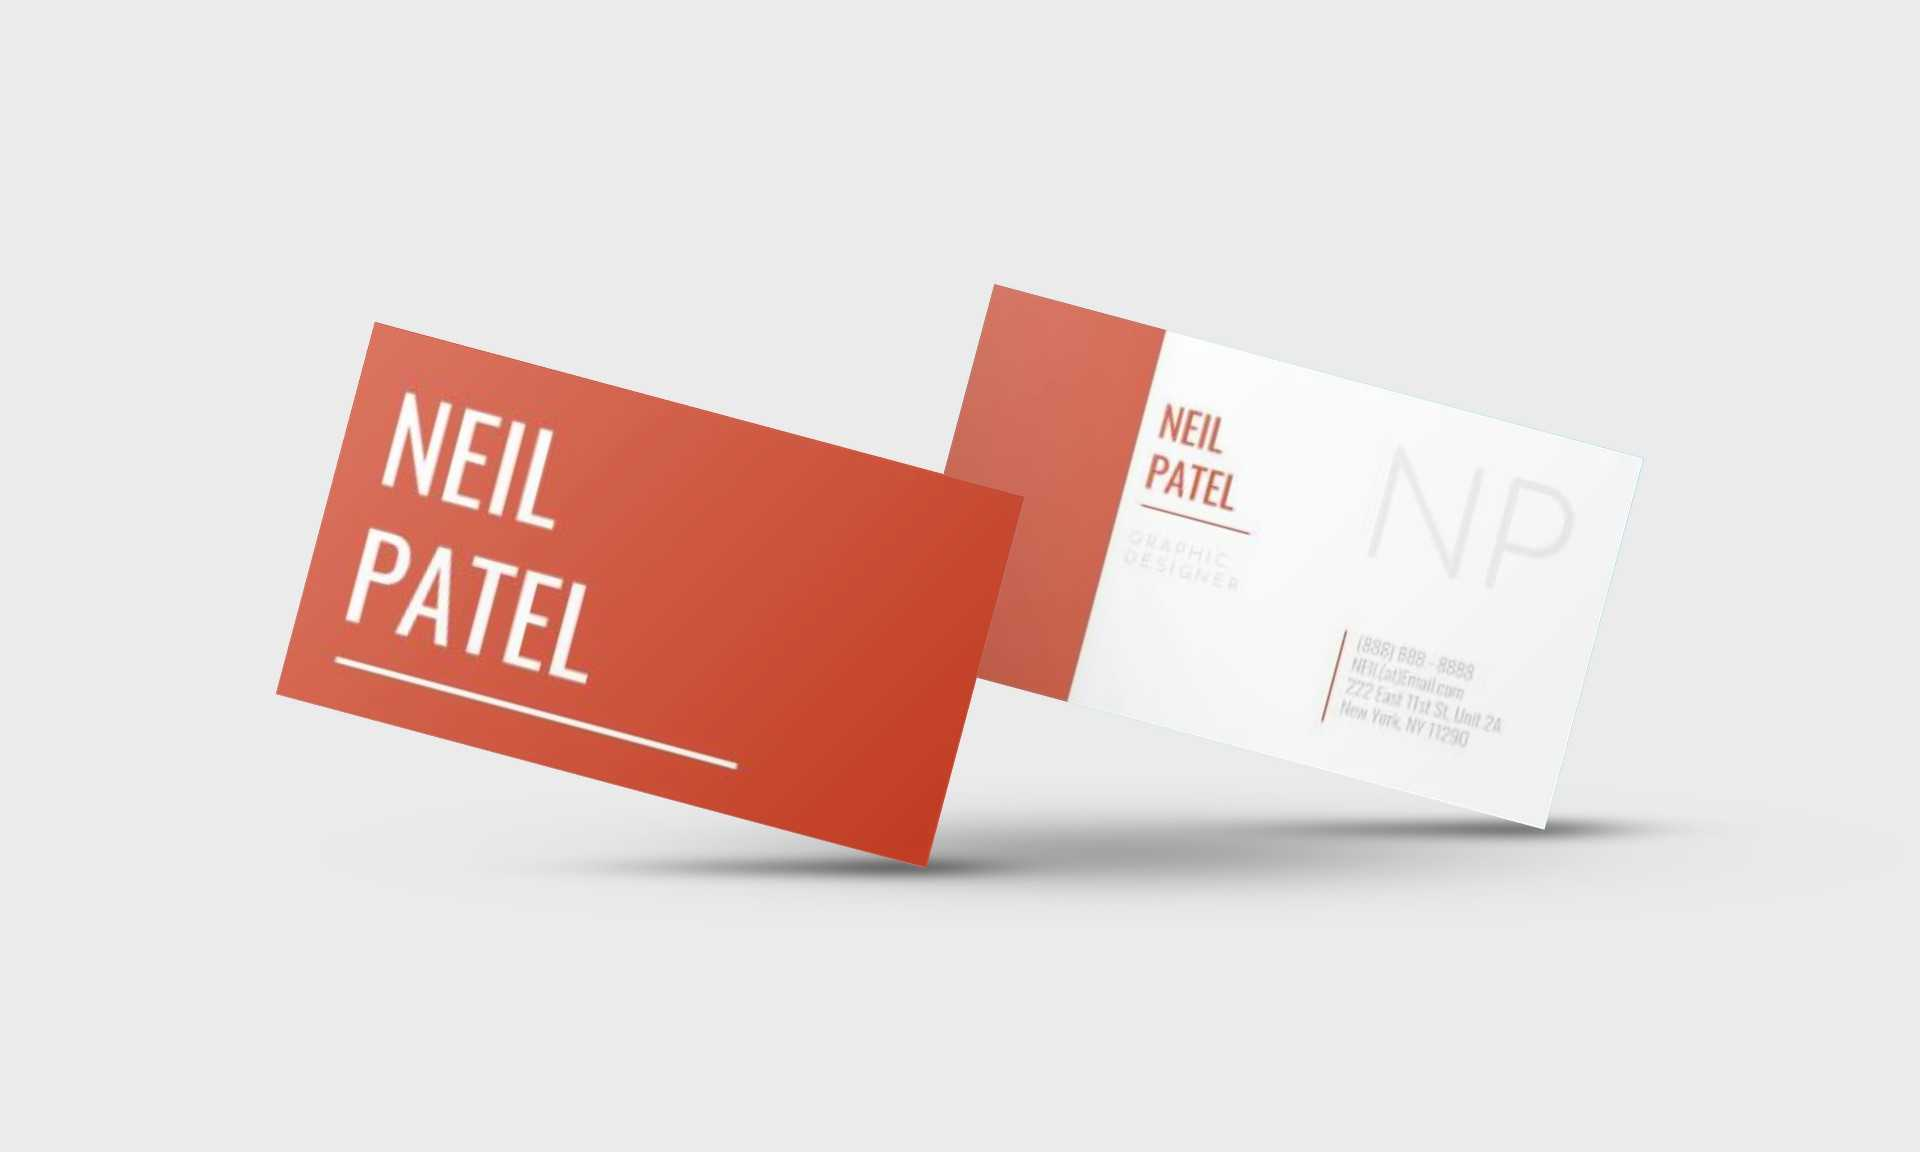 Neil Patel Google Docs Business Card Template - Stand Out Shop Pertaining To Business Card Template For Google Docs